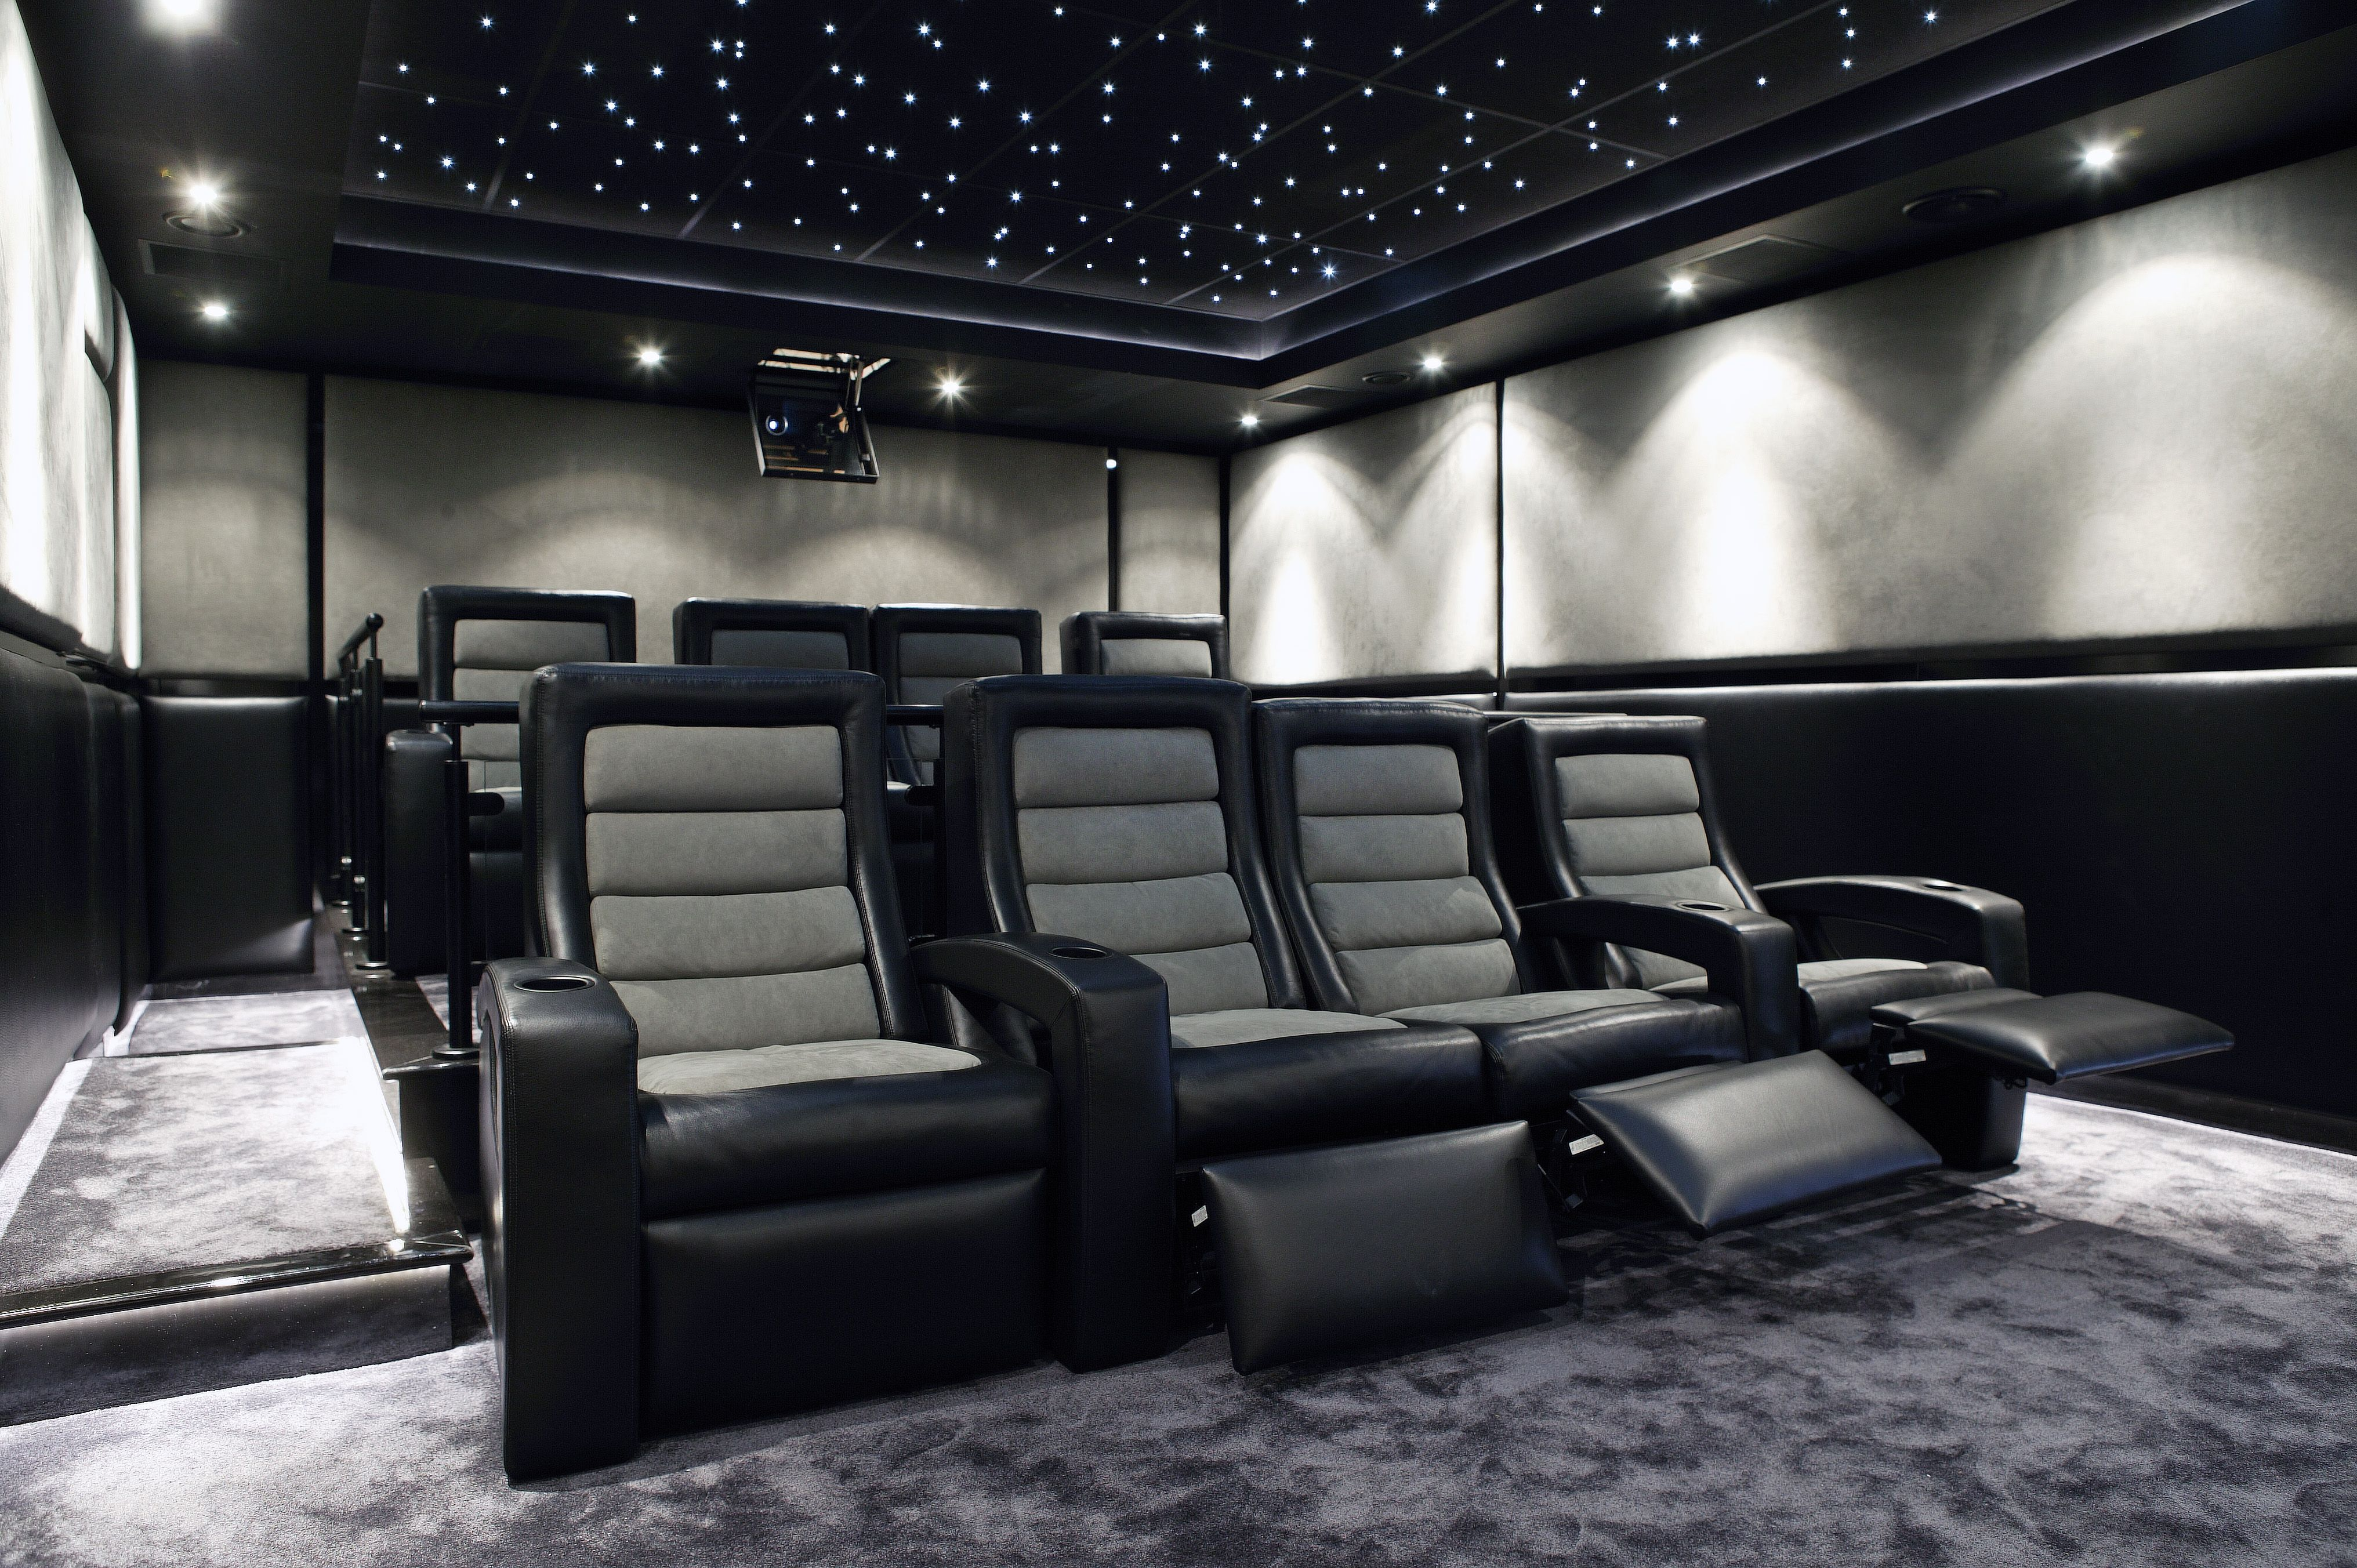 Fiber Optic Ceiling In The Theater Home Theater Rooms Home